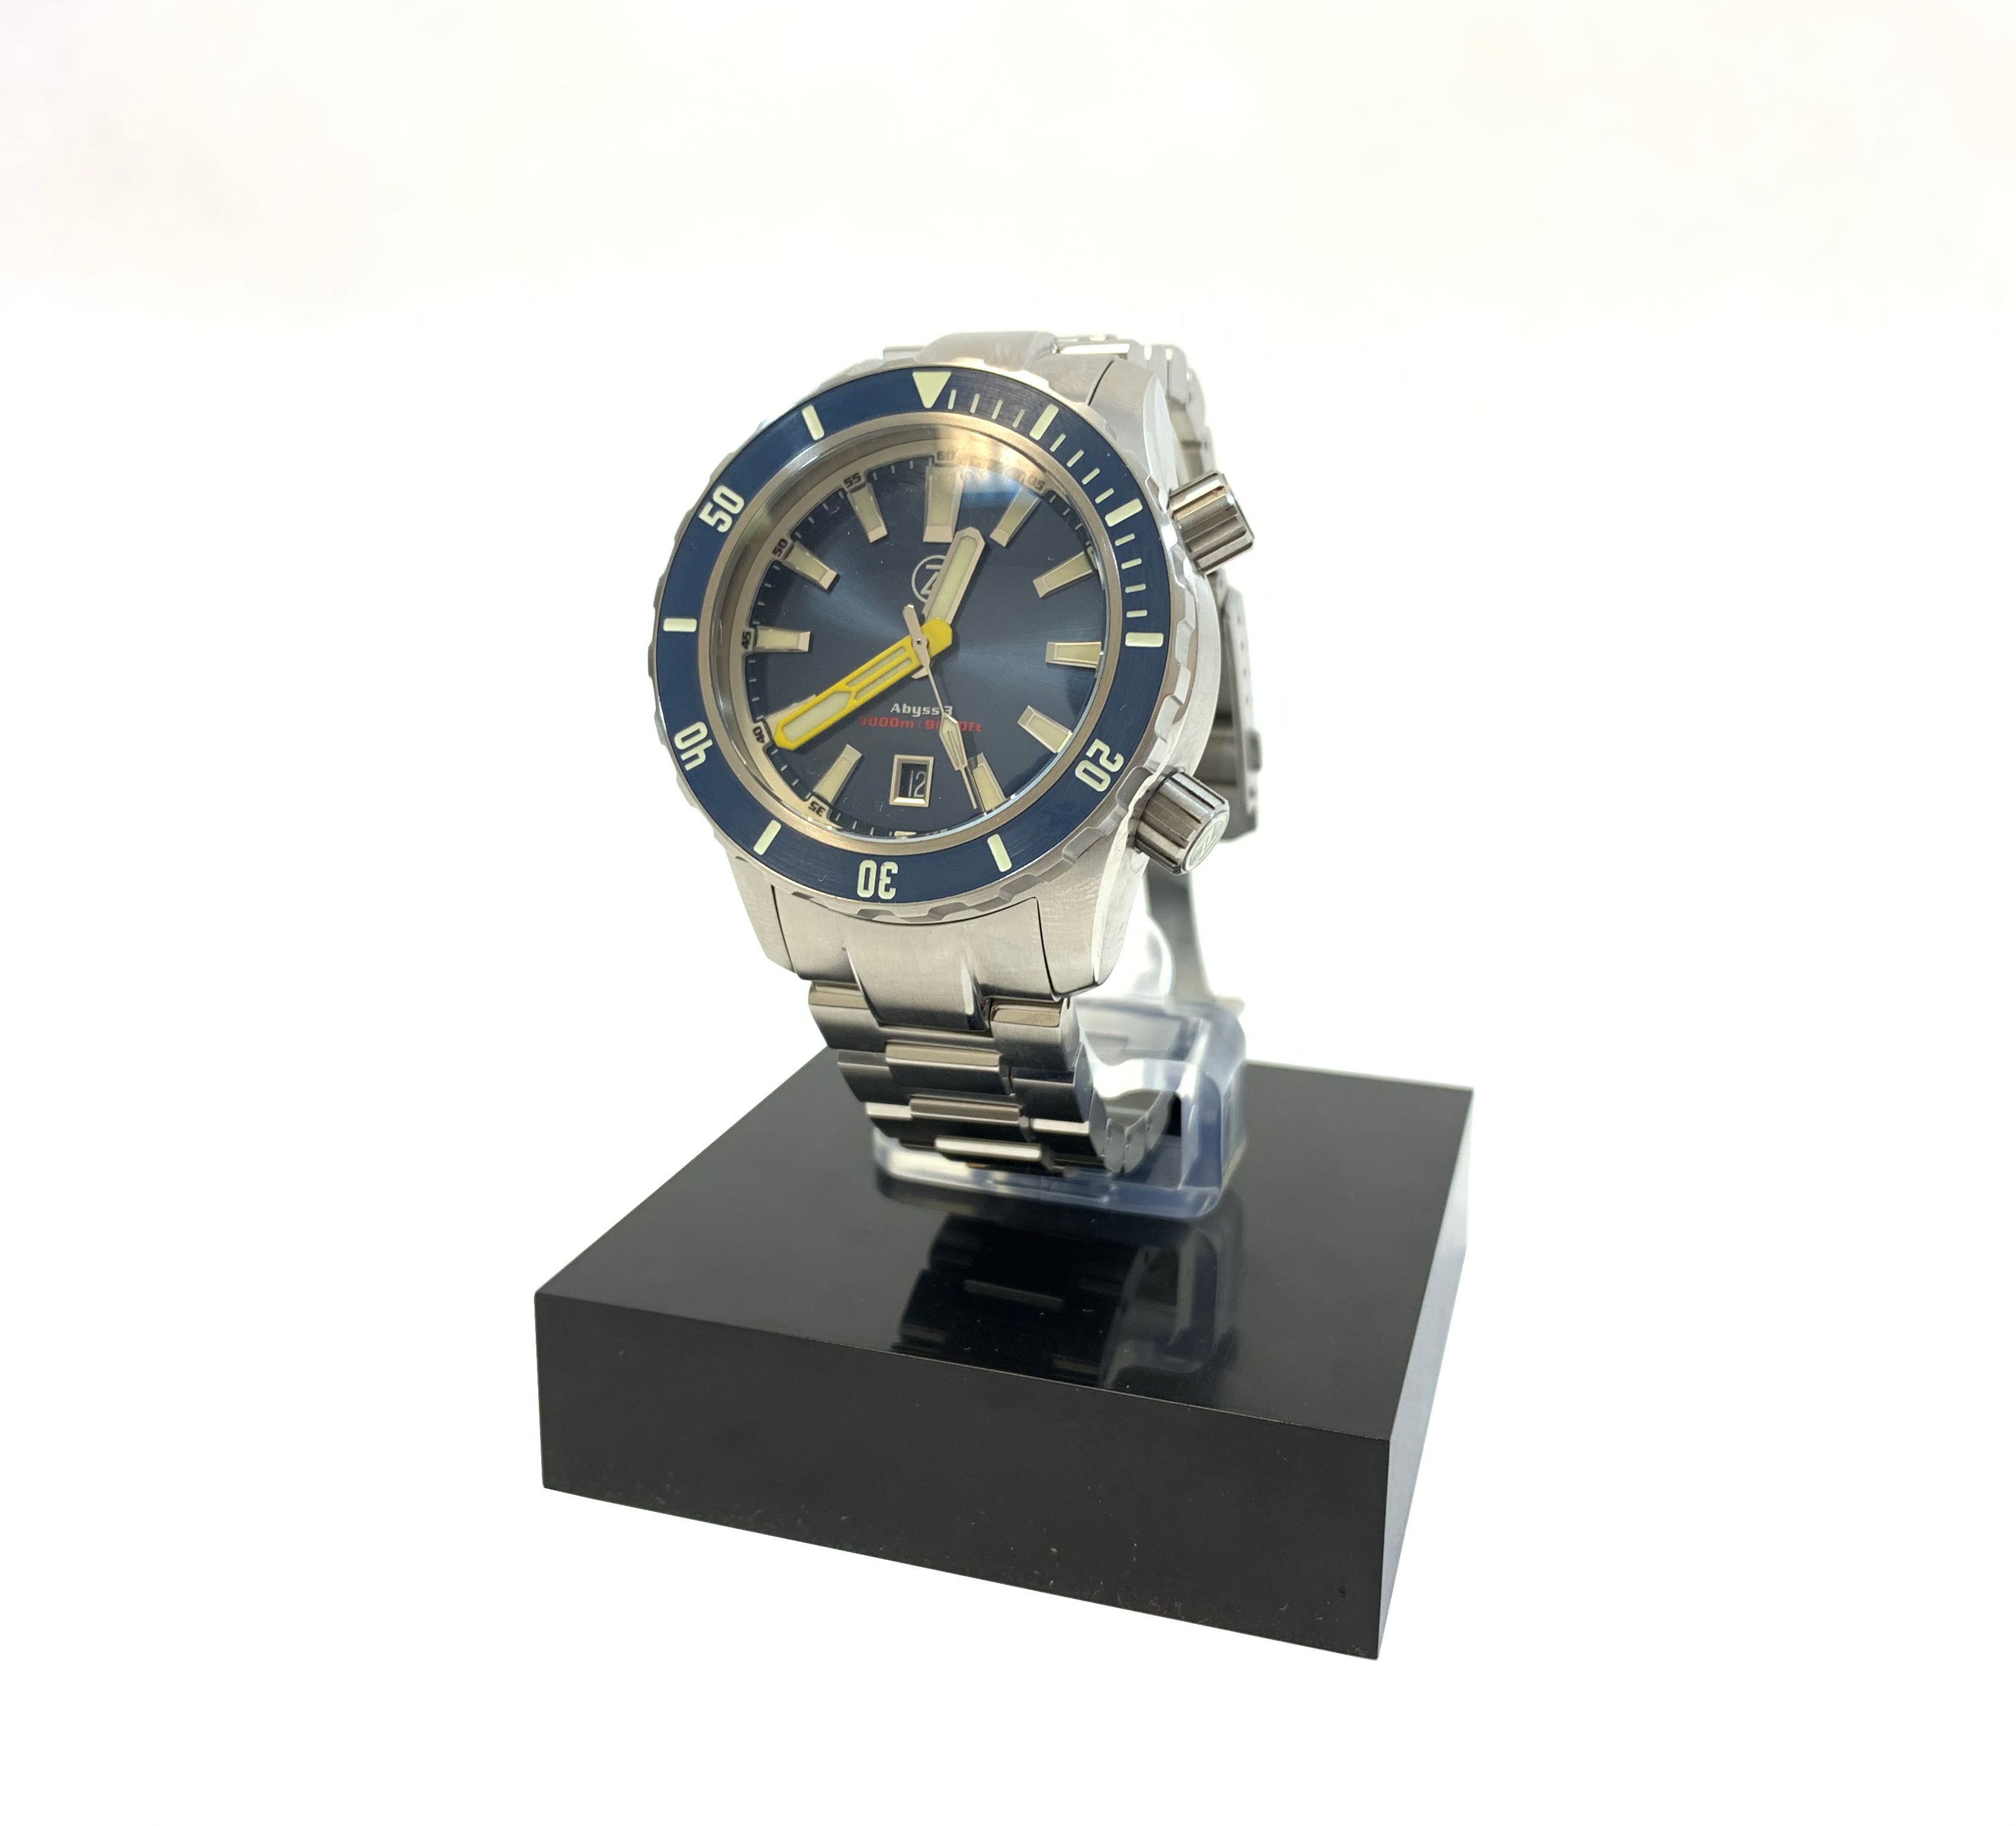 Zelos Abyss 3 3000M Steel Midnight Blue Ceramic Bezel 43mm Yellow hands Limited Edition Automatic Diver Watch